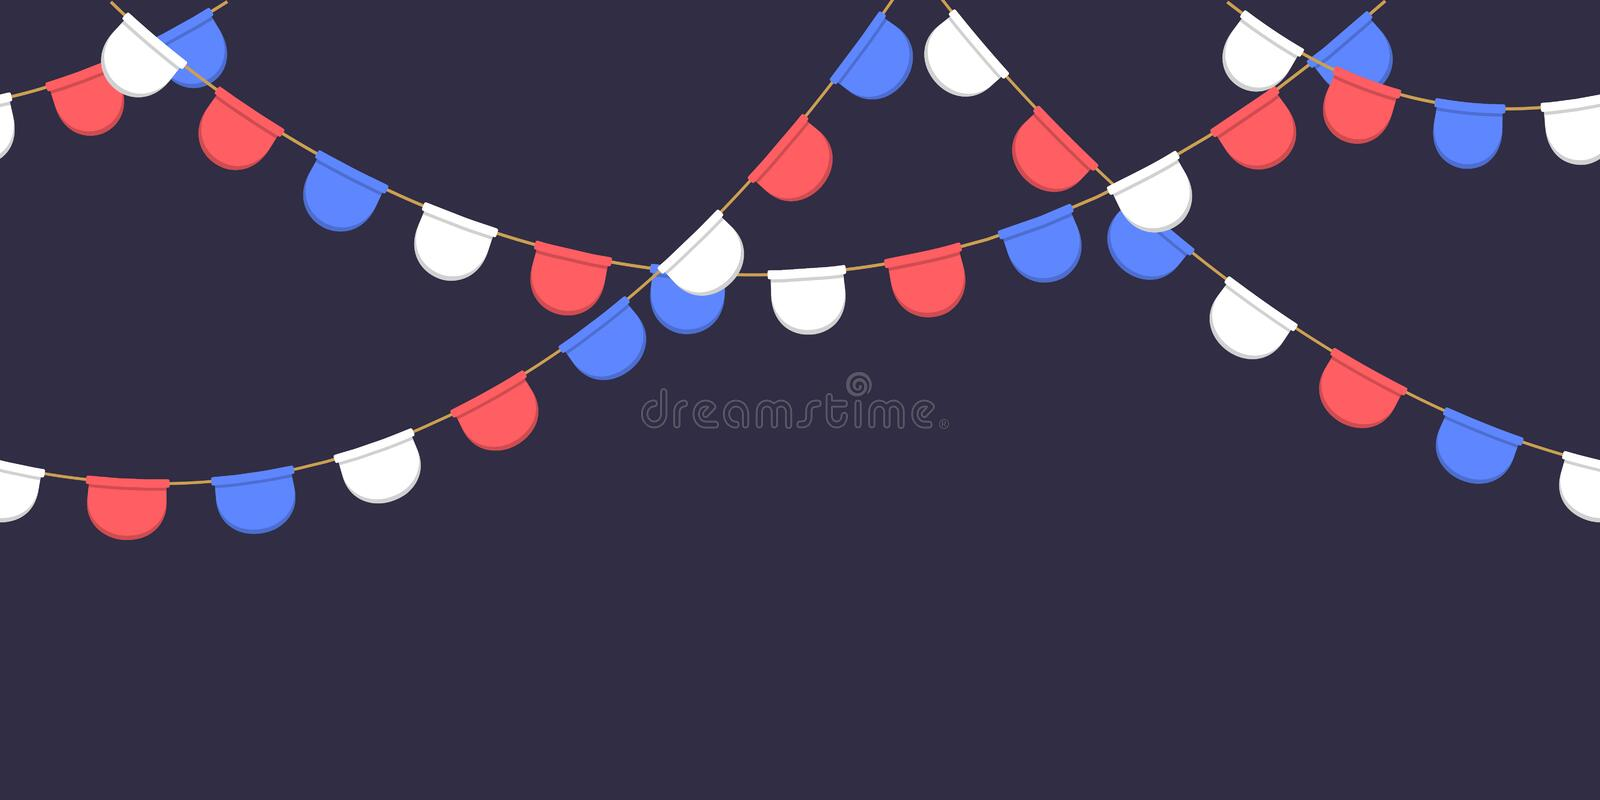 Seamless garland with celebration flags chain, white, blue, red pennonson dark background, footer and banner for decoration. S vector illustration